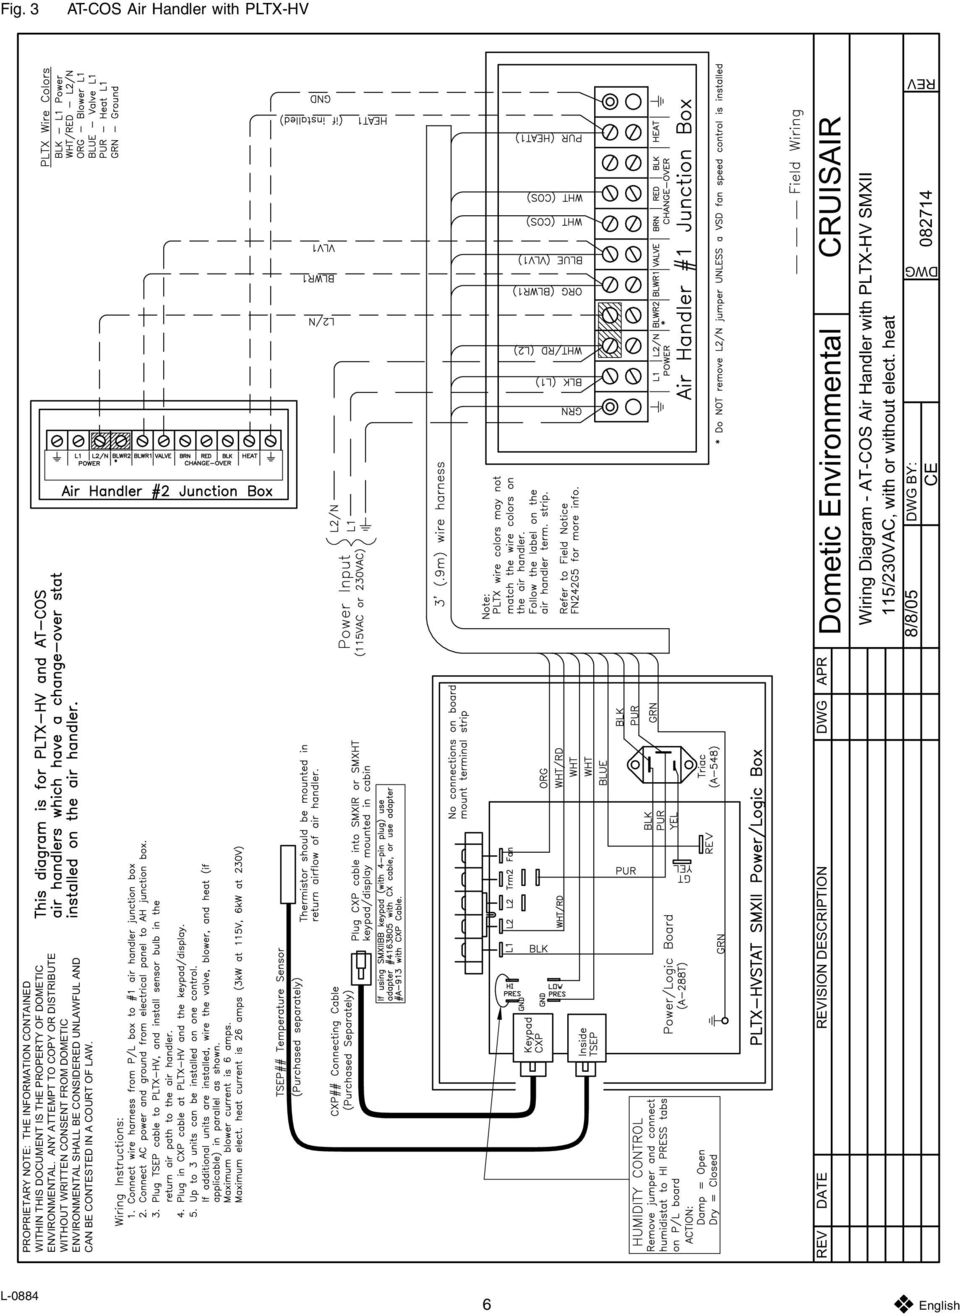 tw air handler wiring diagrams